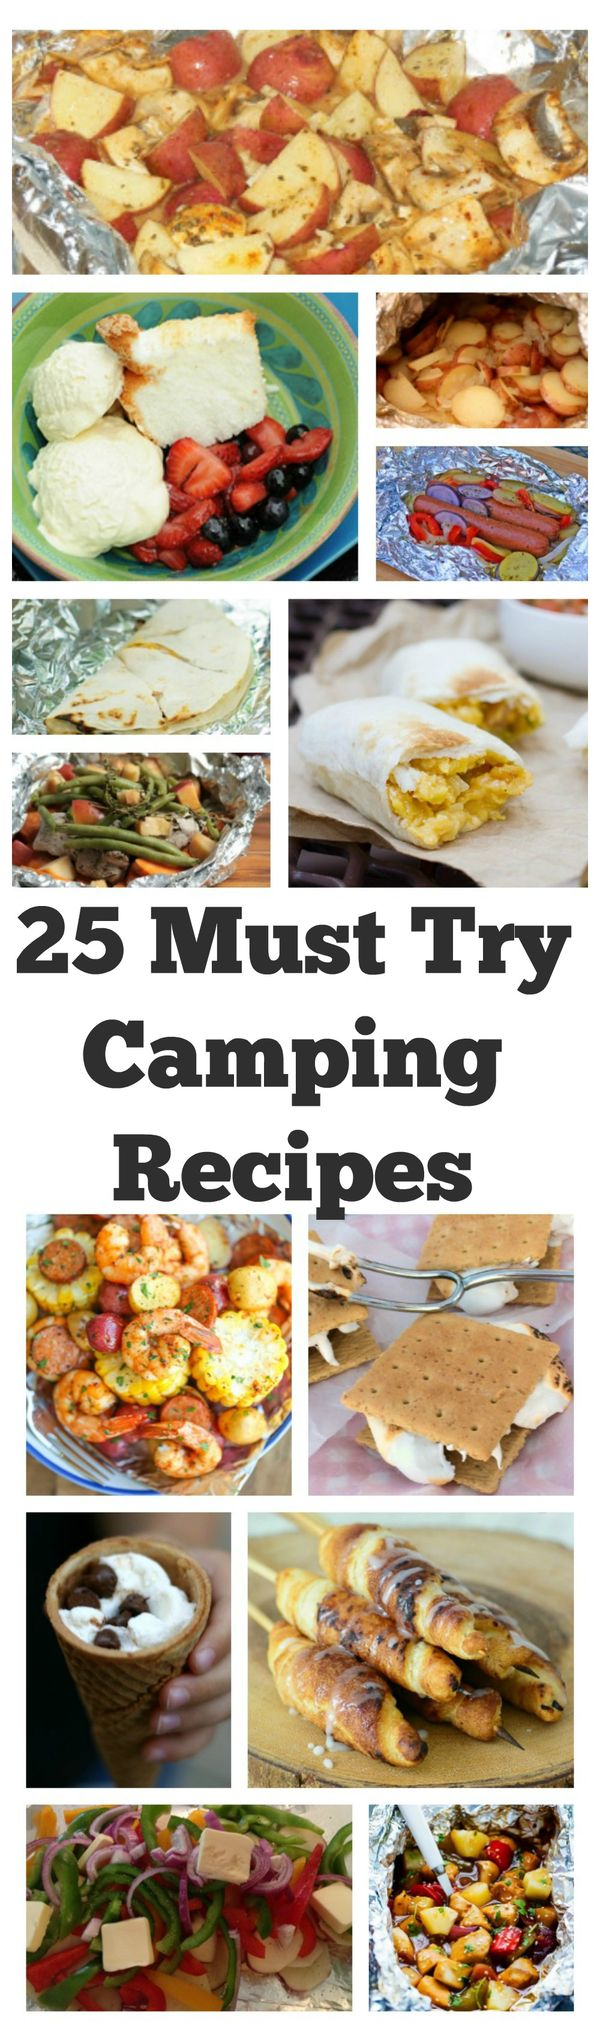 25 Must Try Camping Recipes - you will love the variety of recipes listed here that are all perfect for your next camping trip. Pin these recipes, make a list and great ready for delicious ideas that will make your next camping trip amazingly delicious!